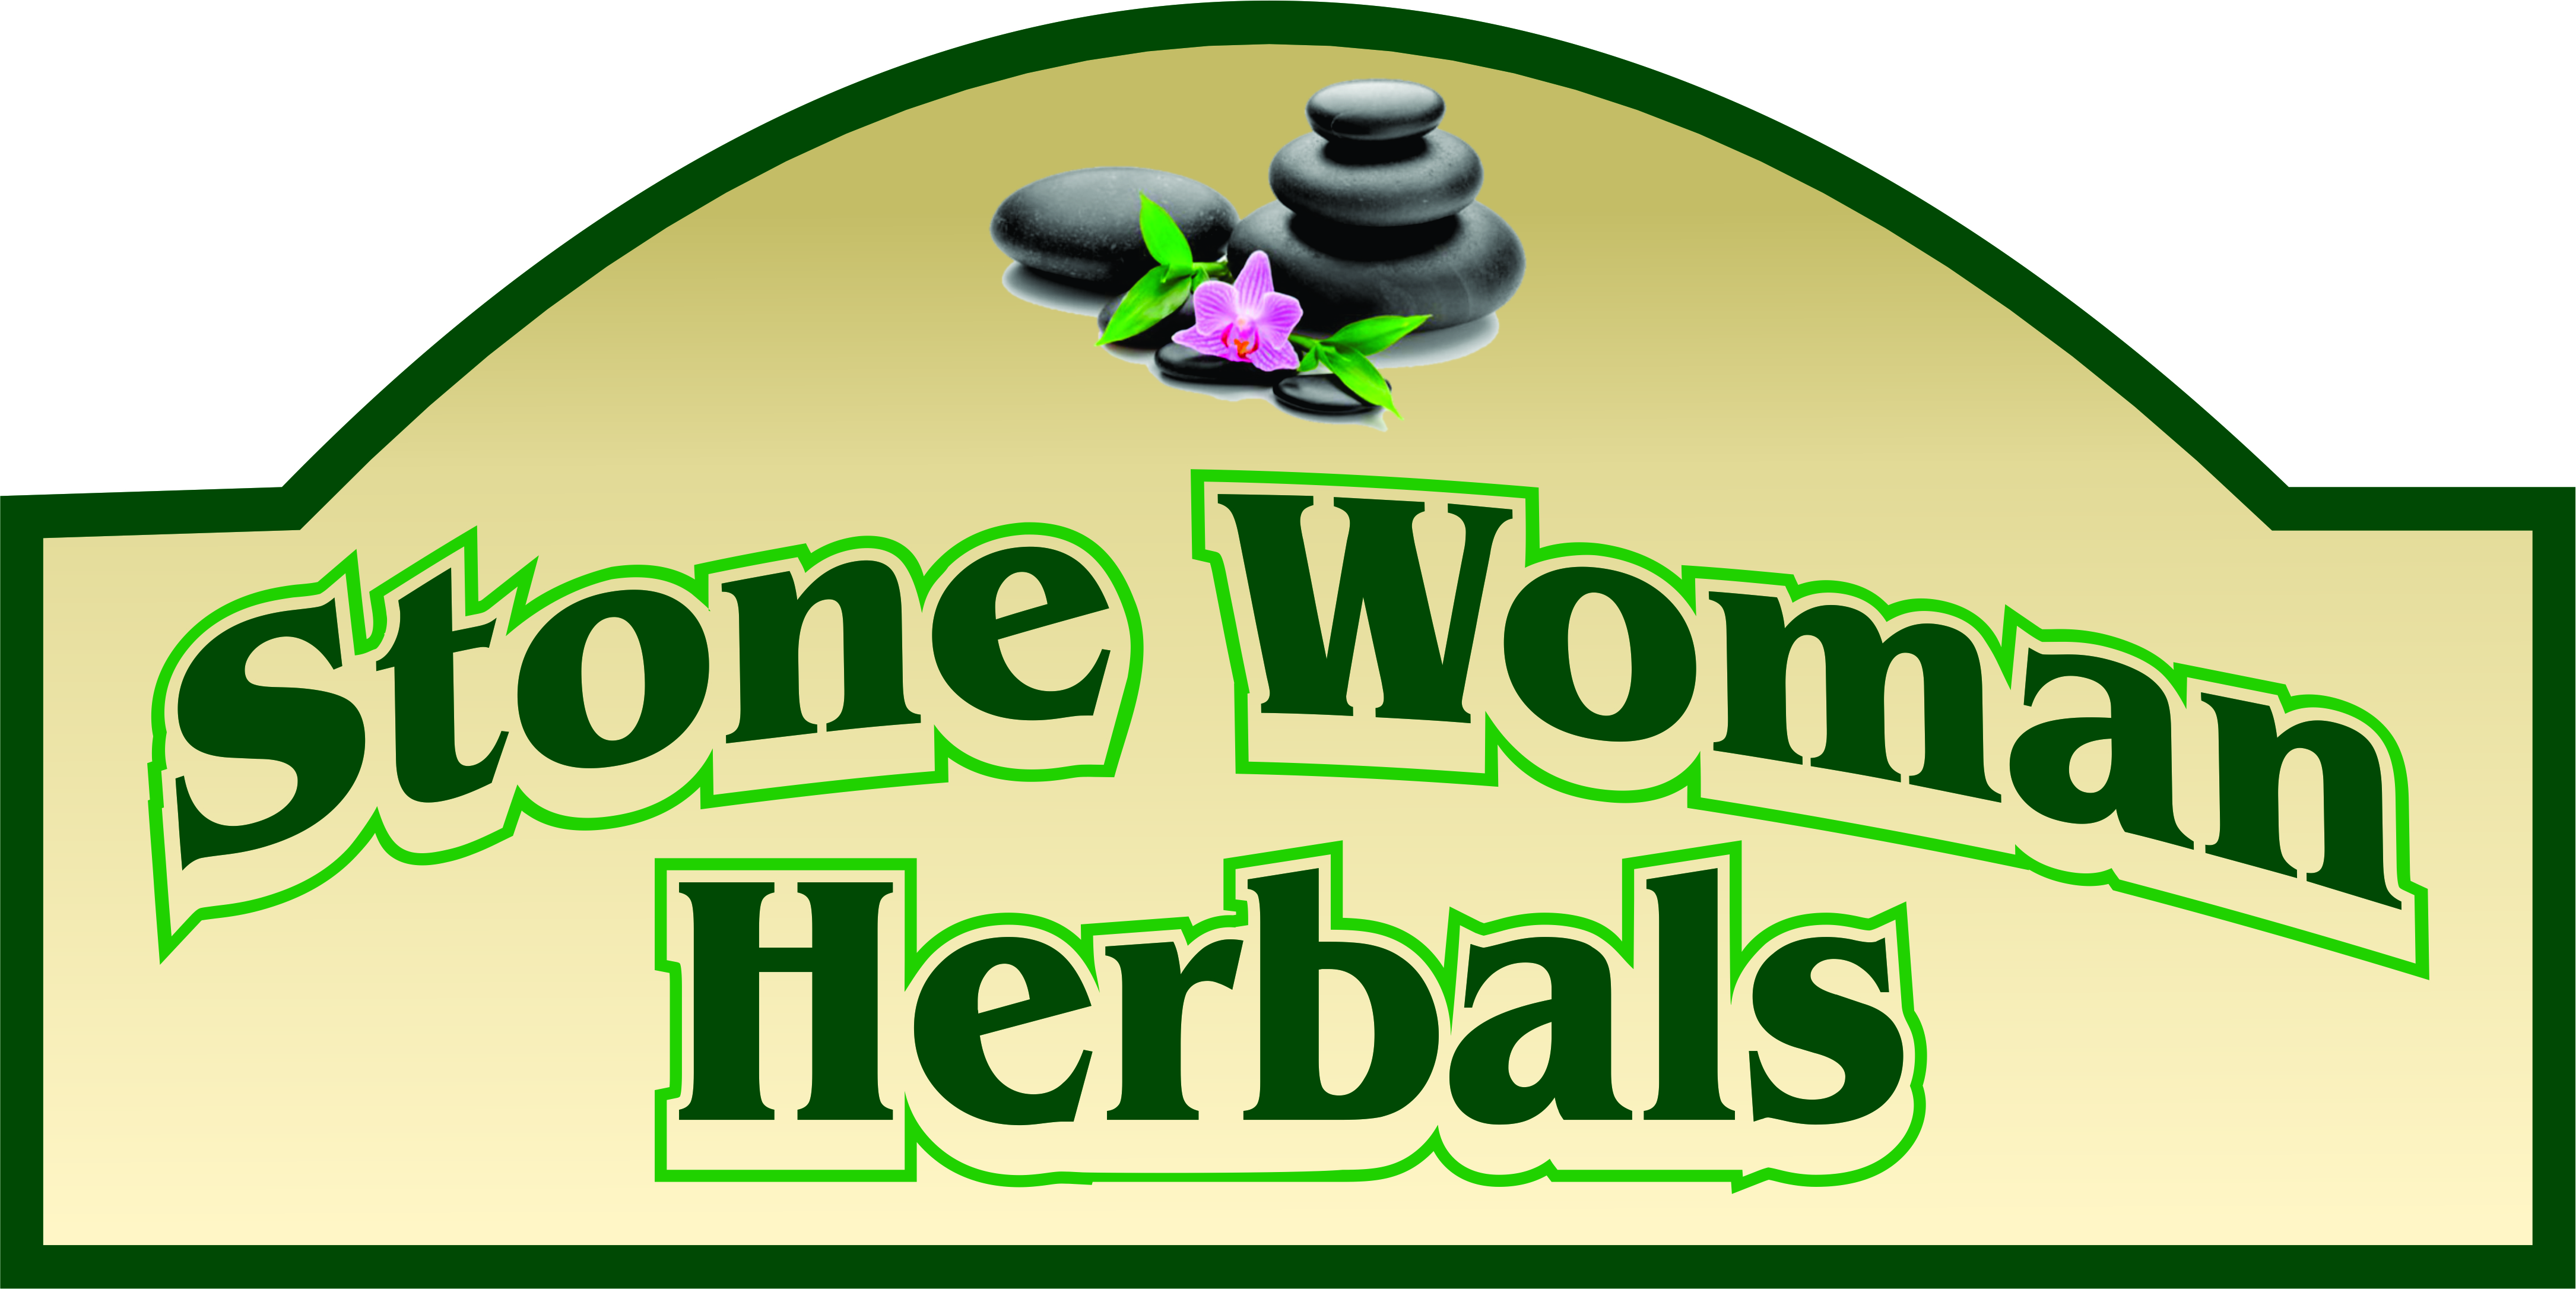 Stone Woman Herbals